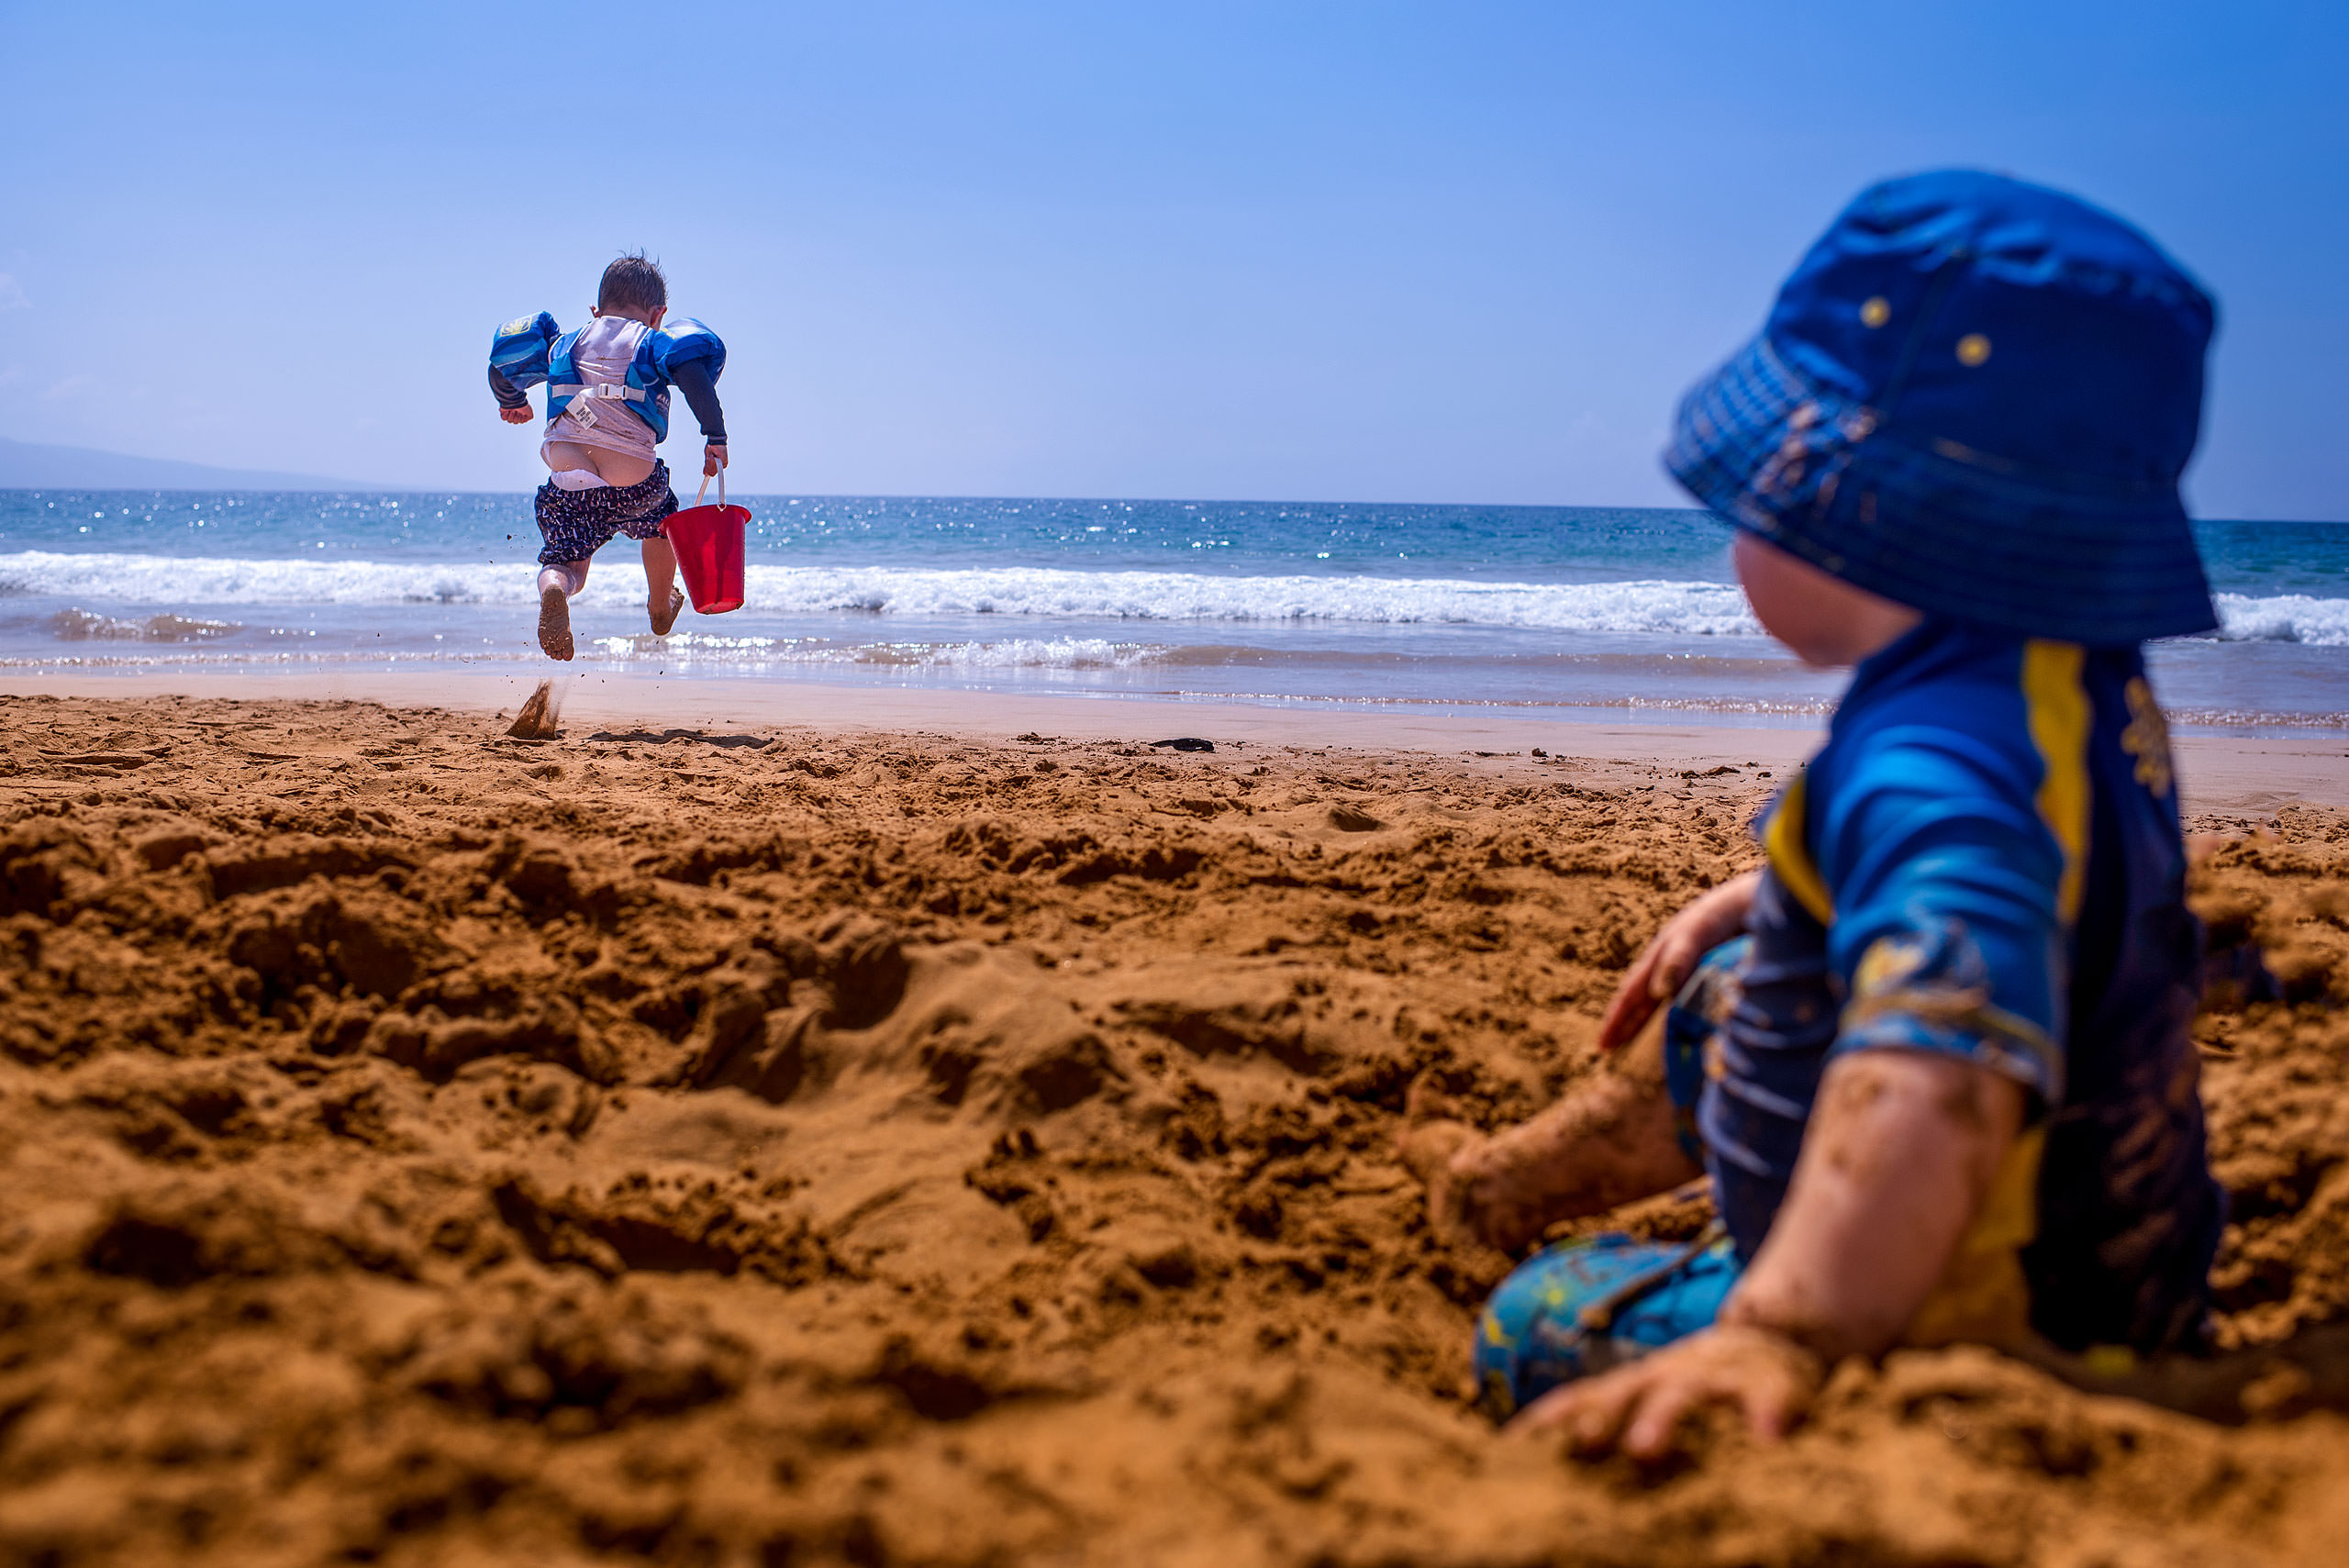 a boy running on a beach towards the ocean by destination family photographers sean leblanc